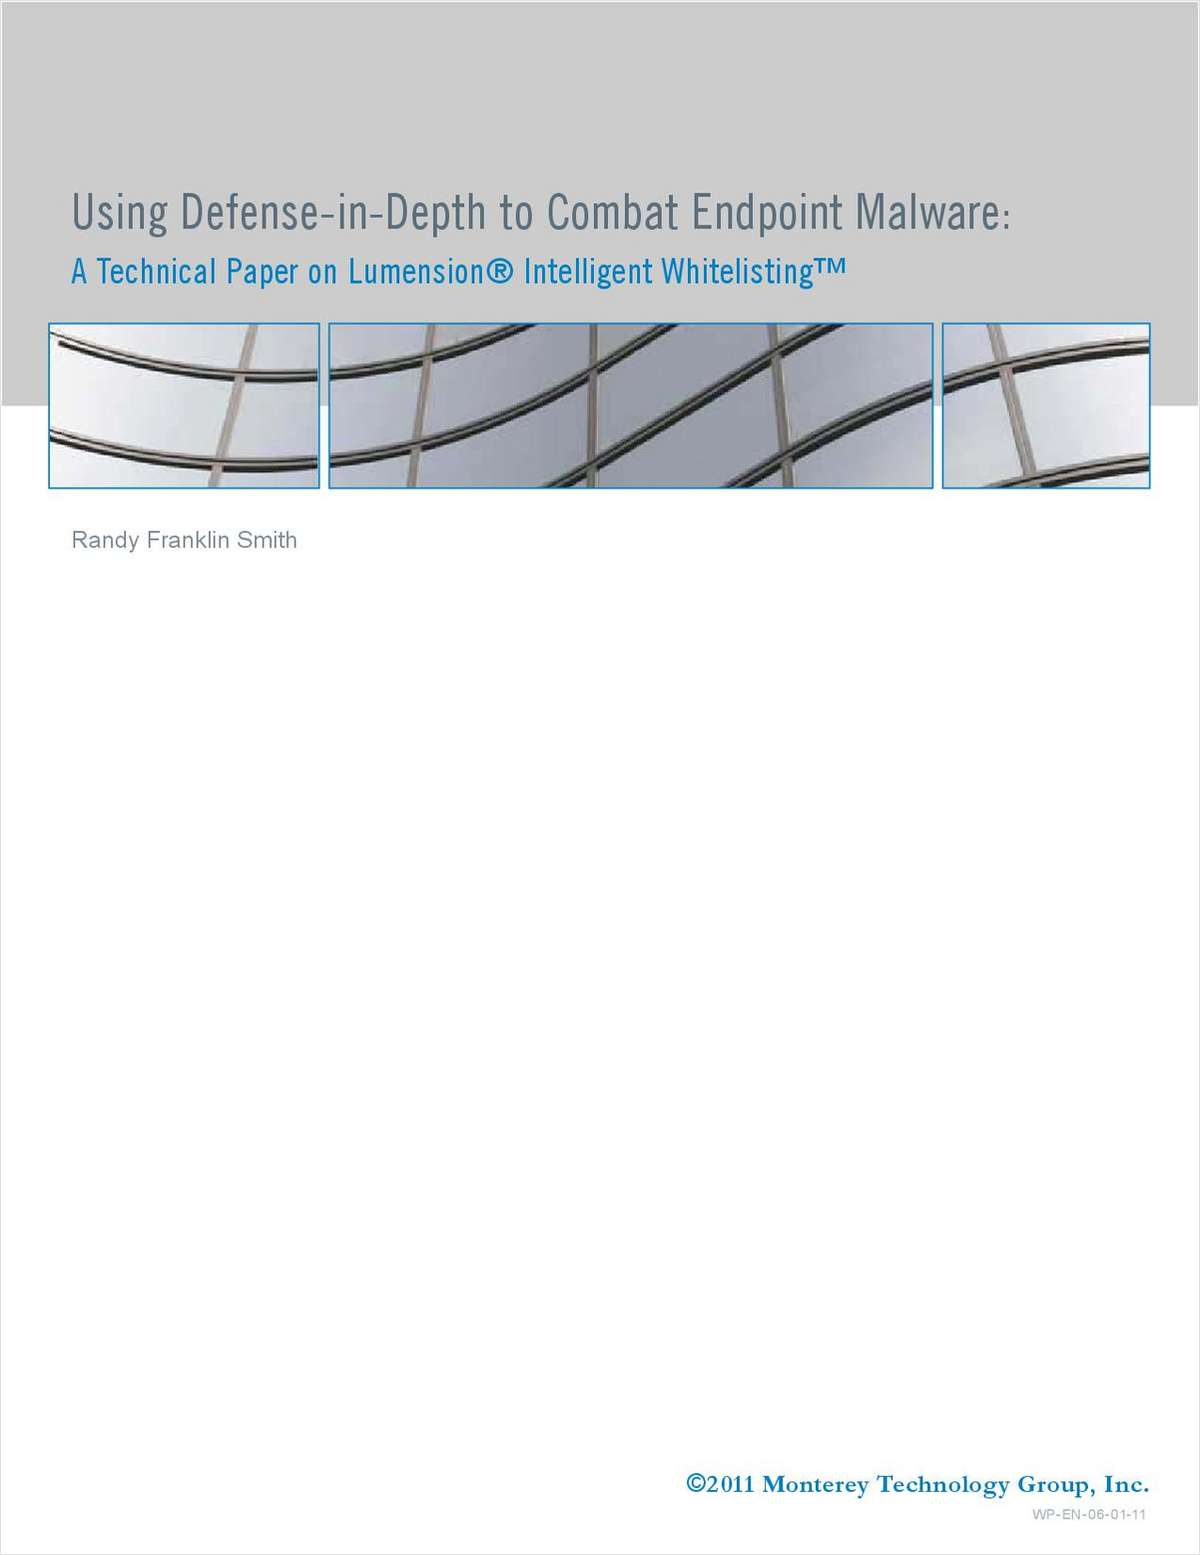 Using Defense-in-Depth to Combat Endpoint Malware: A Technical Paper